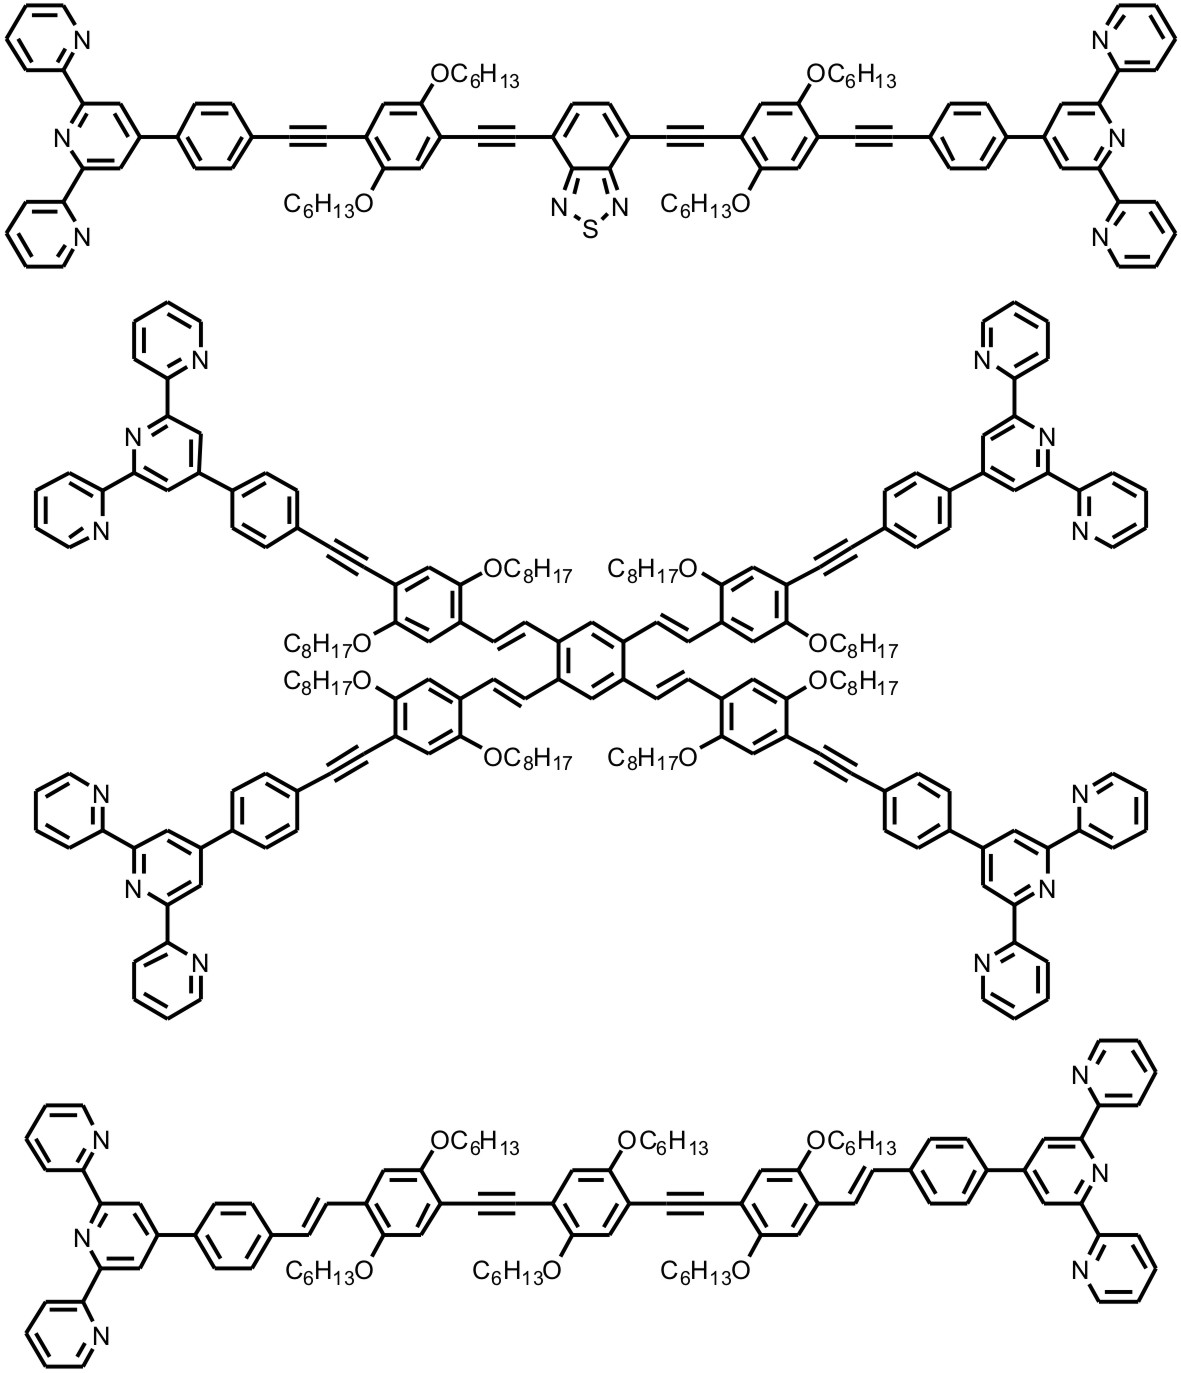 ORGN 288 - Rigid p-conjugated 2,2':6',2''-terpyridines: Synthesis ...